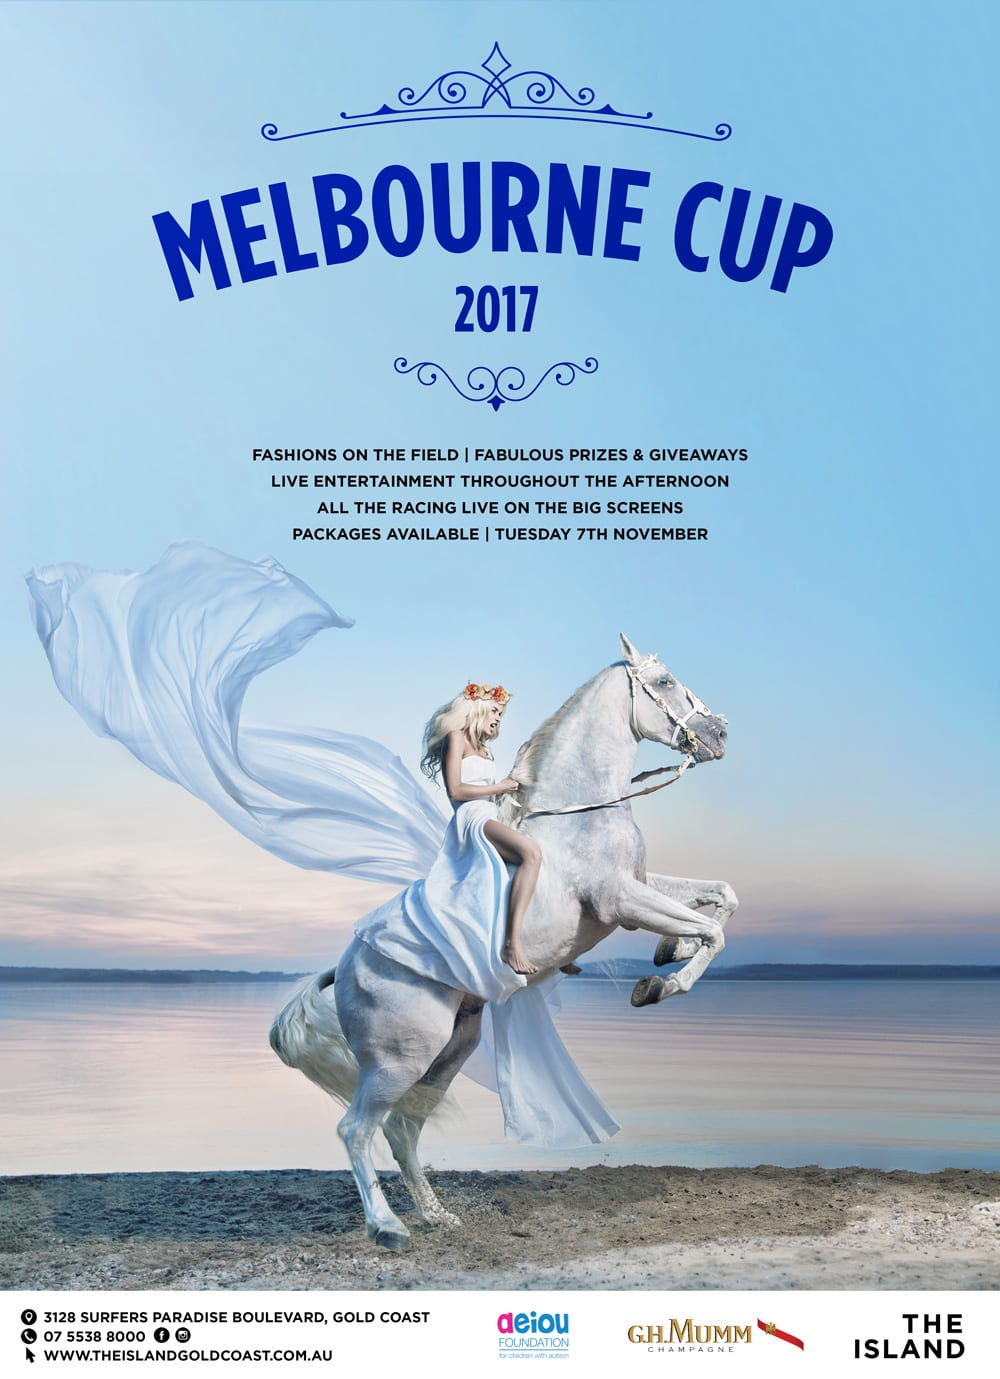 The Island Melbourne Cup [object object] - The Island Melbourne Cup Final Poster - Melbourne Cup 2017